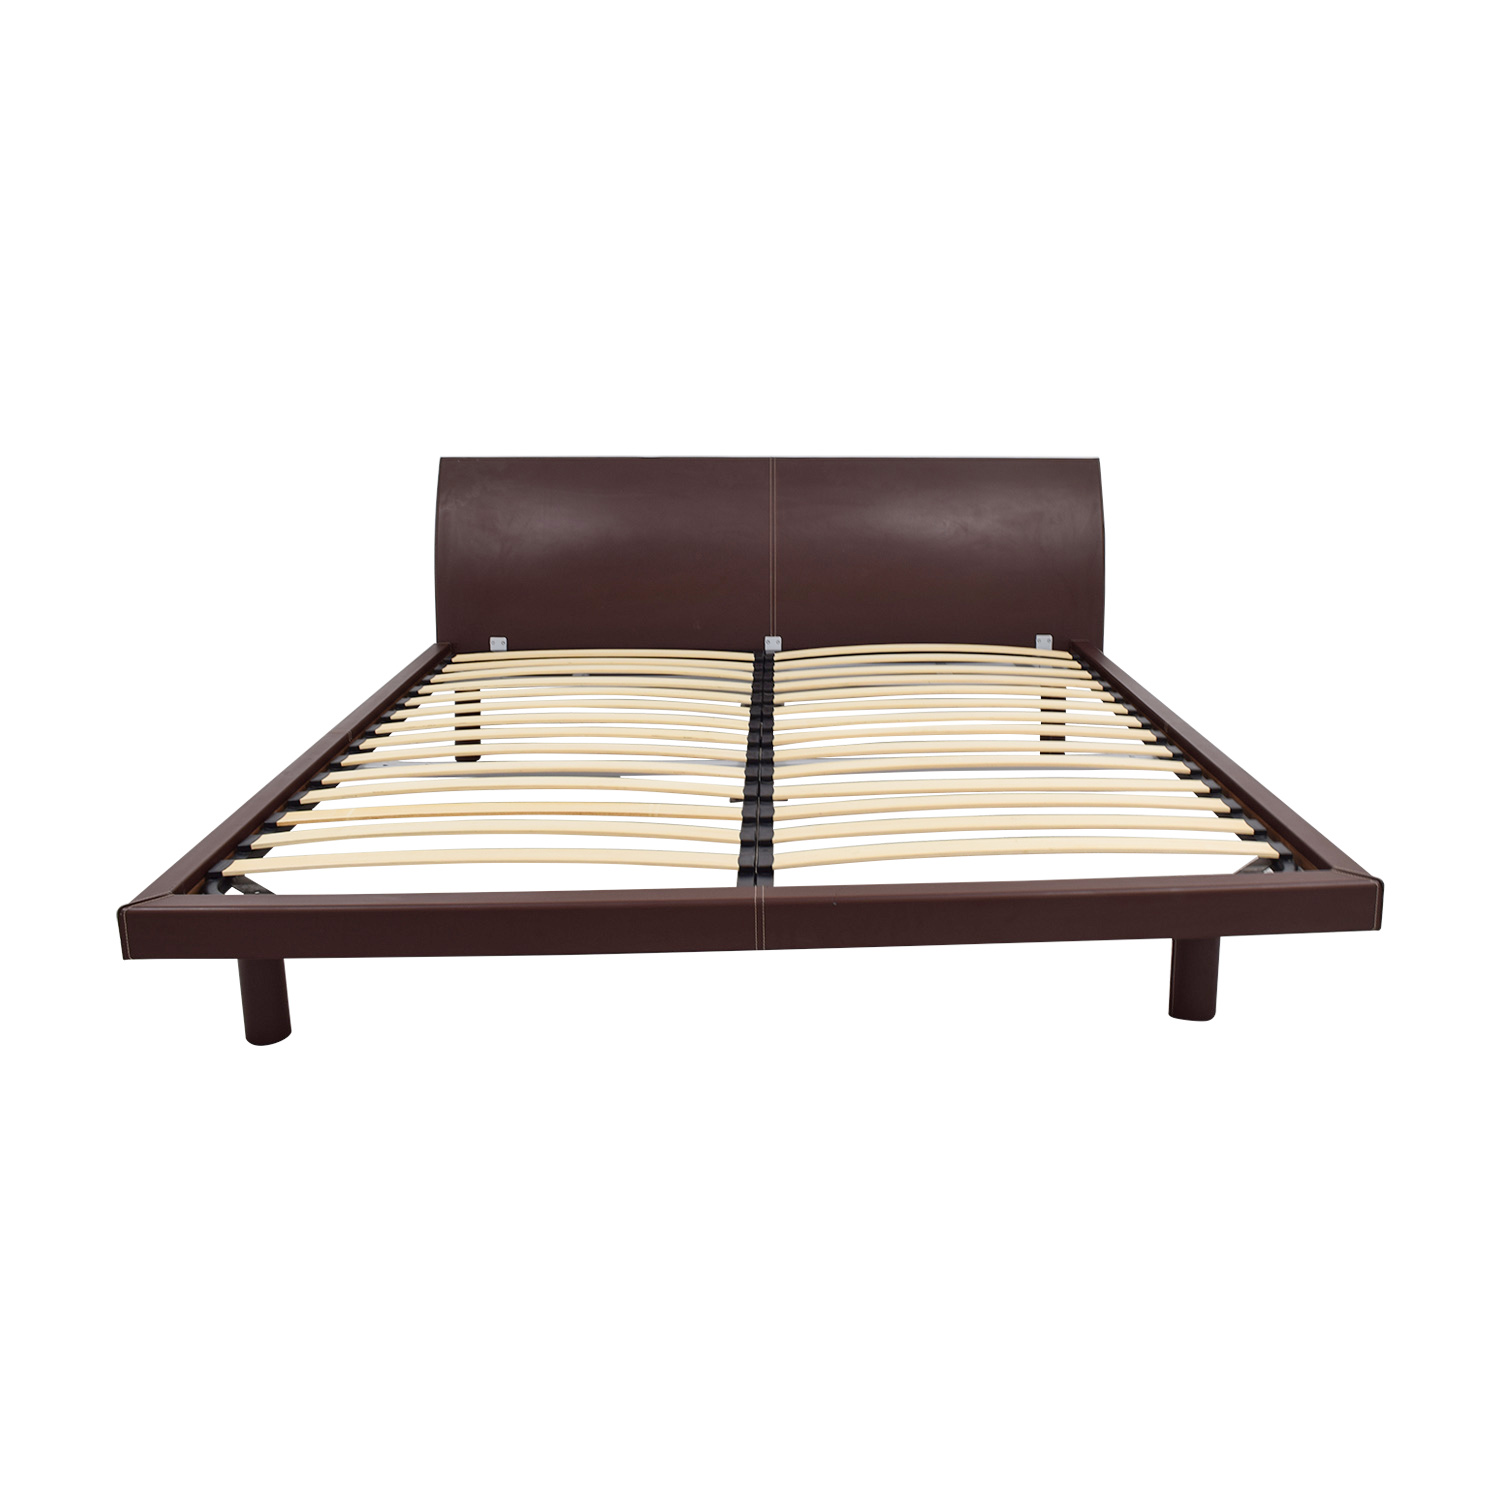 buy Calligaris Concorde Leather King Bed Calligaris Bed Frames